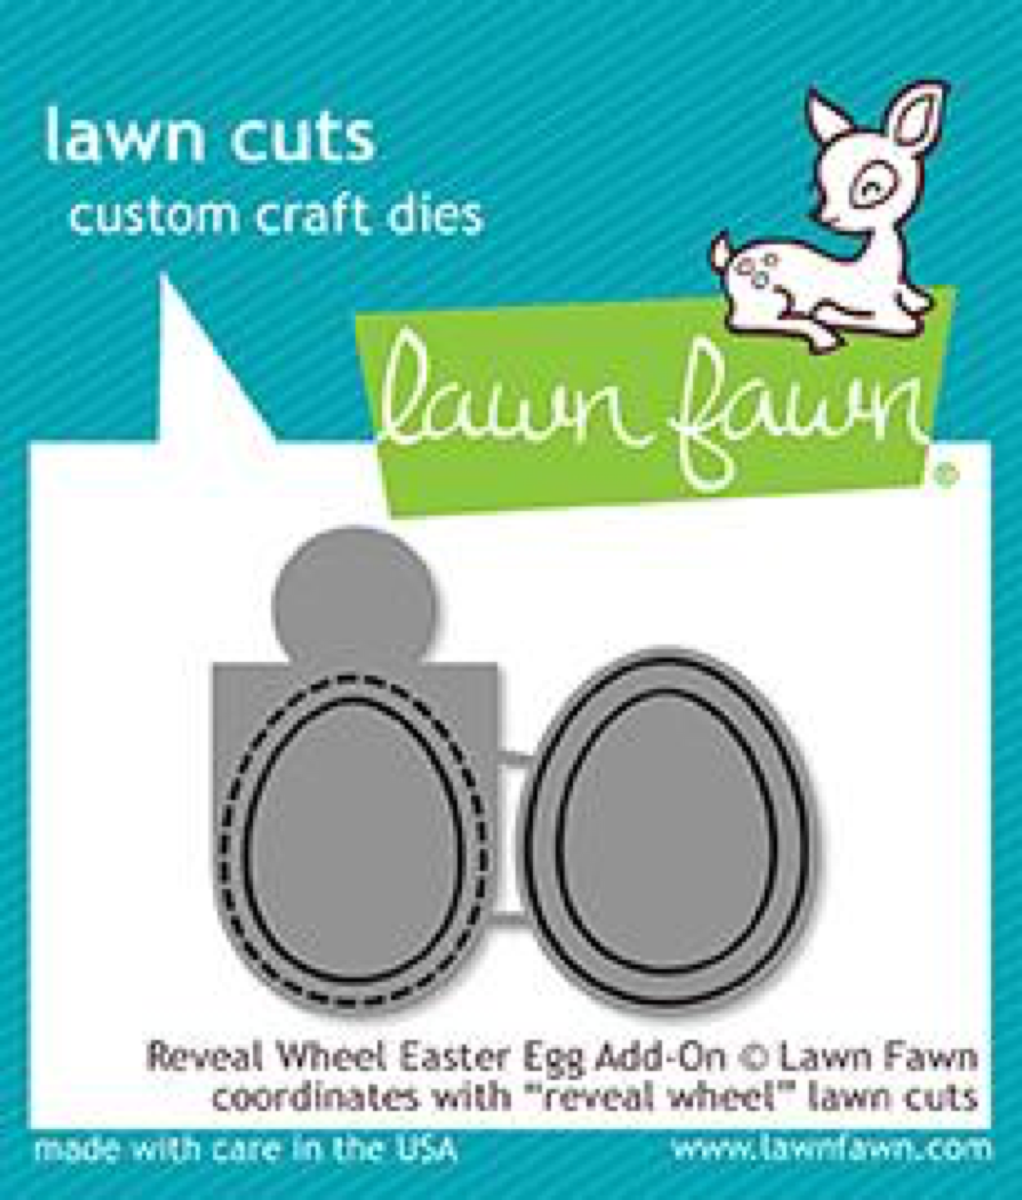 Lawn Fawn - Reveal Wheel Easter Egg Add-On Dies